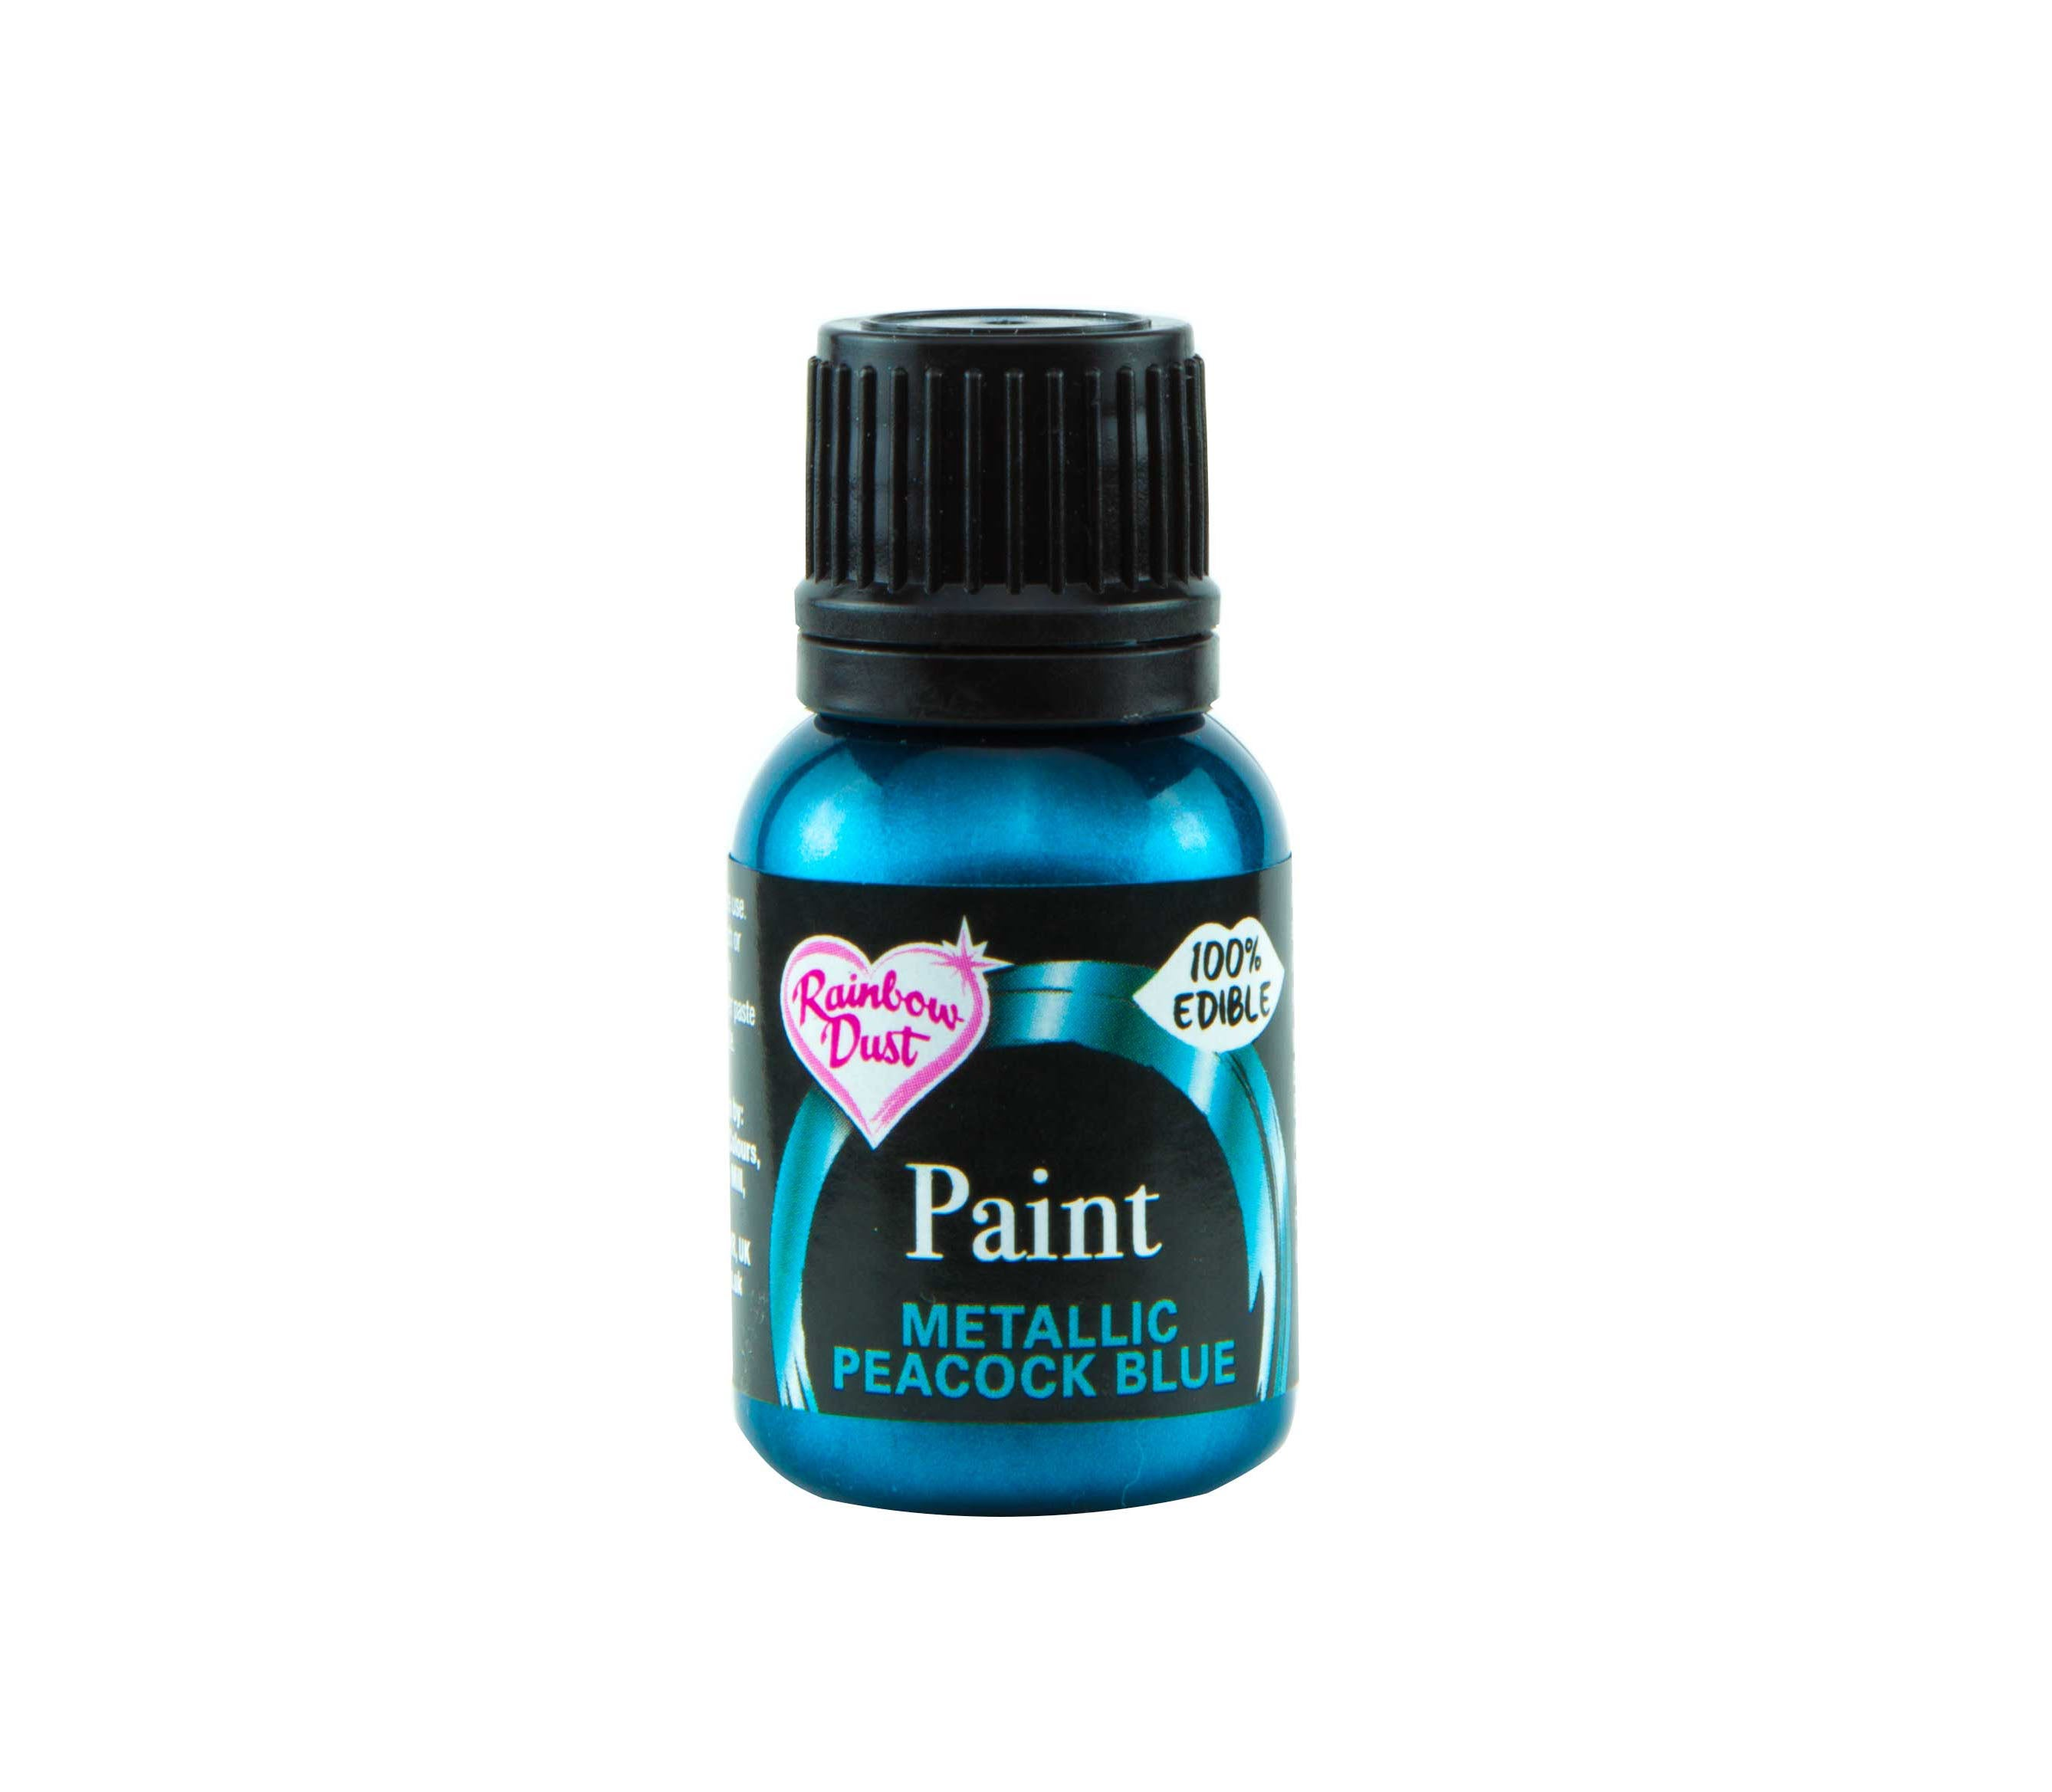 Edible Paints Metallic Peacock Blue 25g